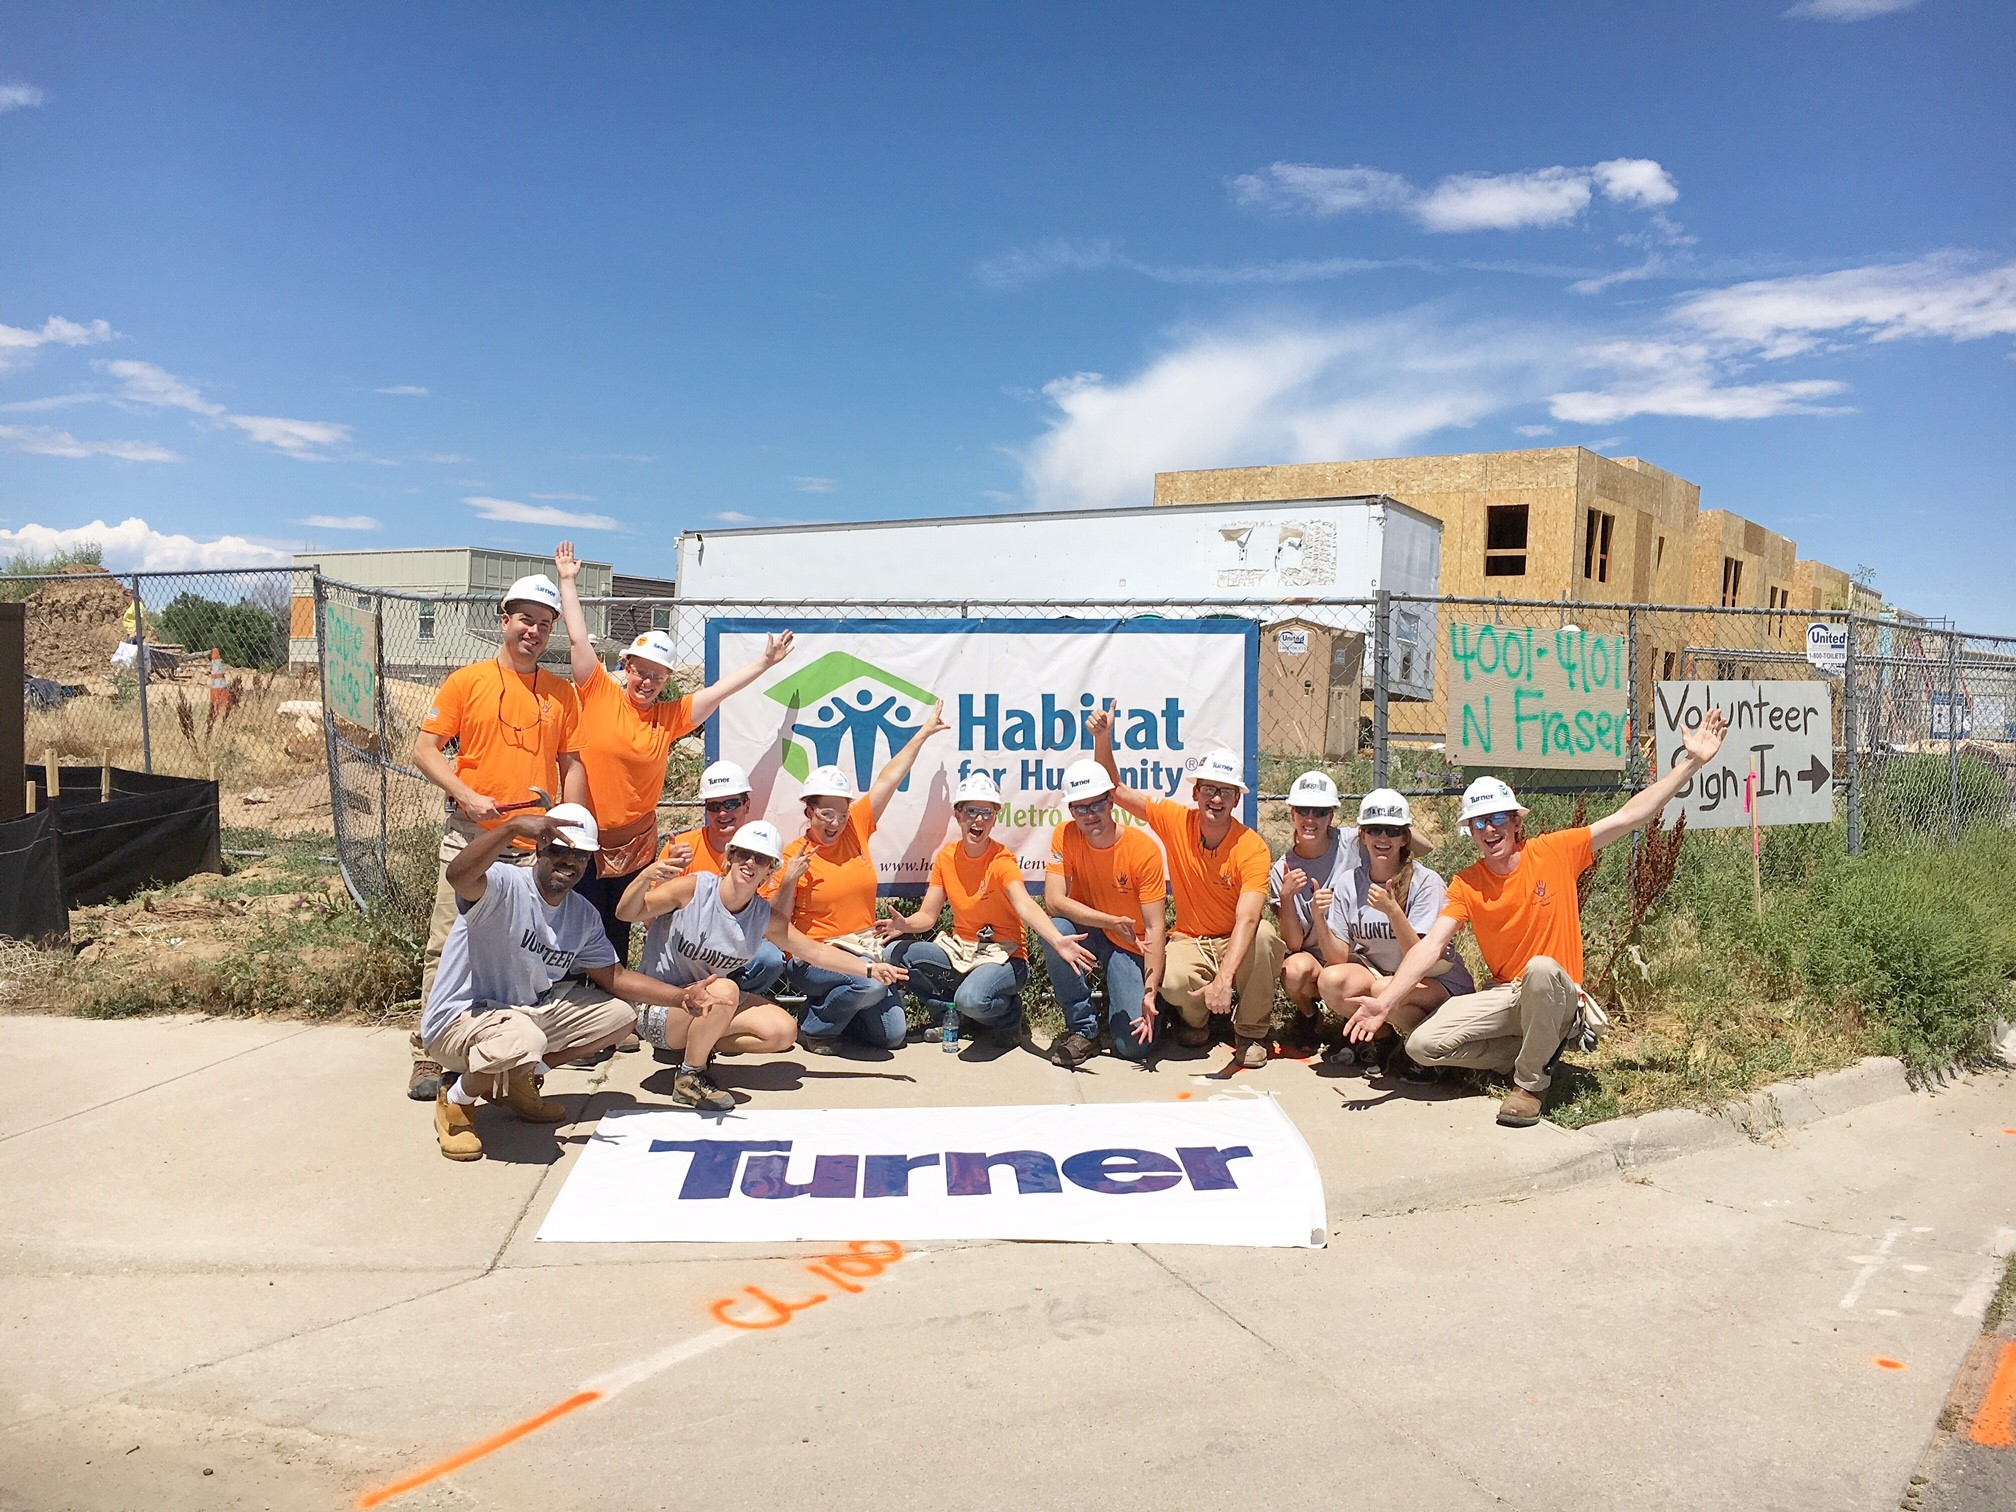 Turner-Flatiron Habitat for Humanity_Denver CO